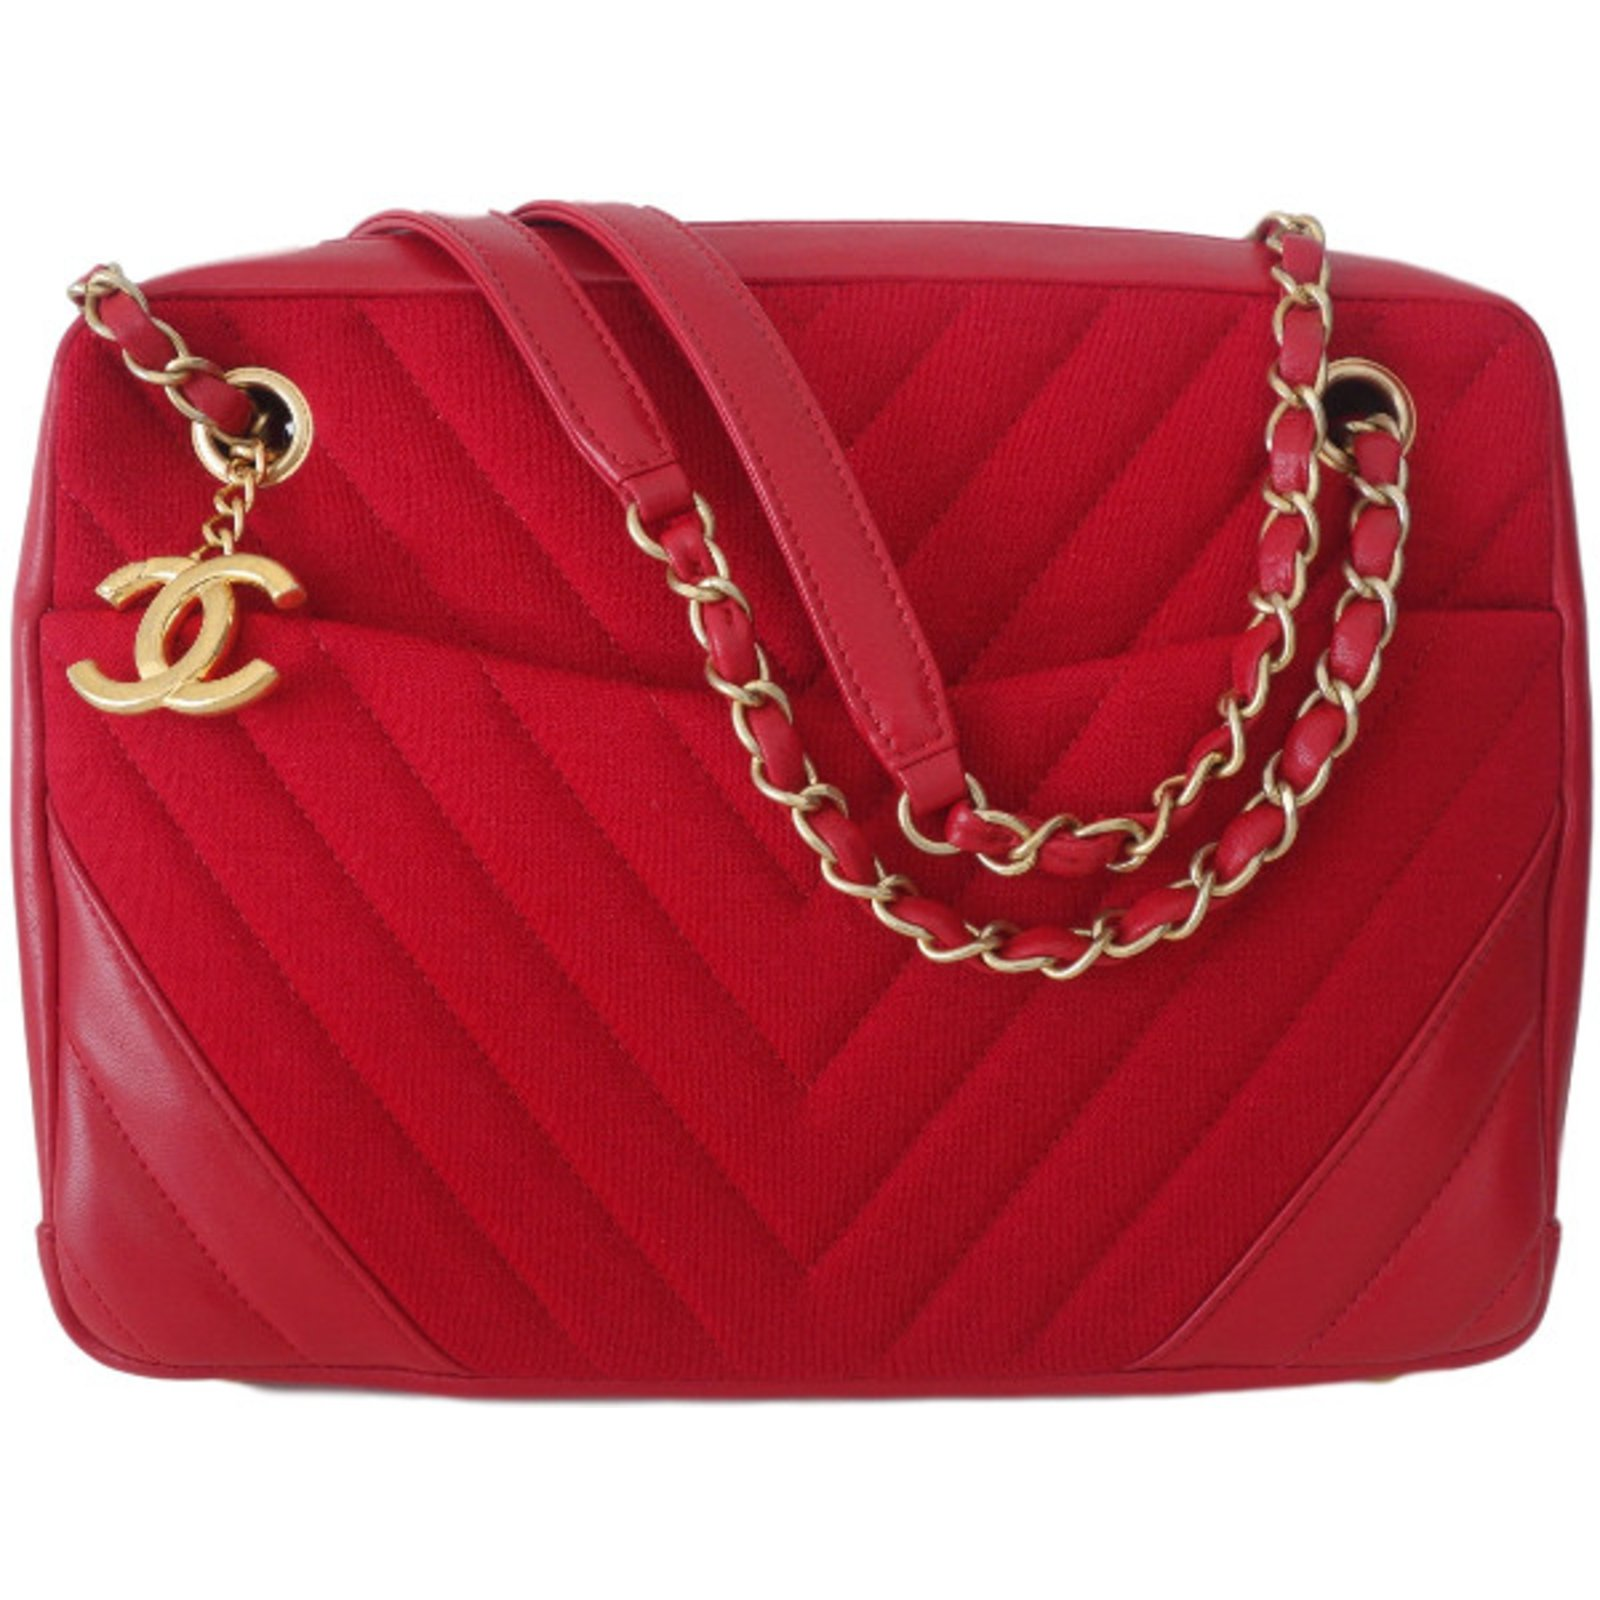 Sacs main chanel sac chanel camera cuir rouge for Sac chanel interieur